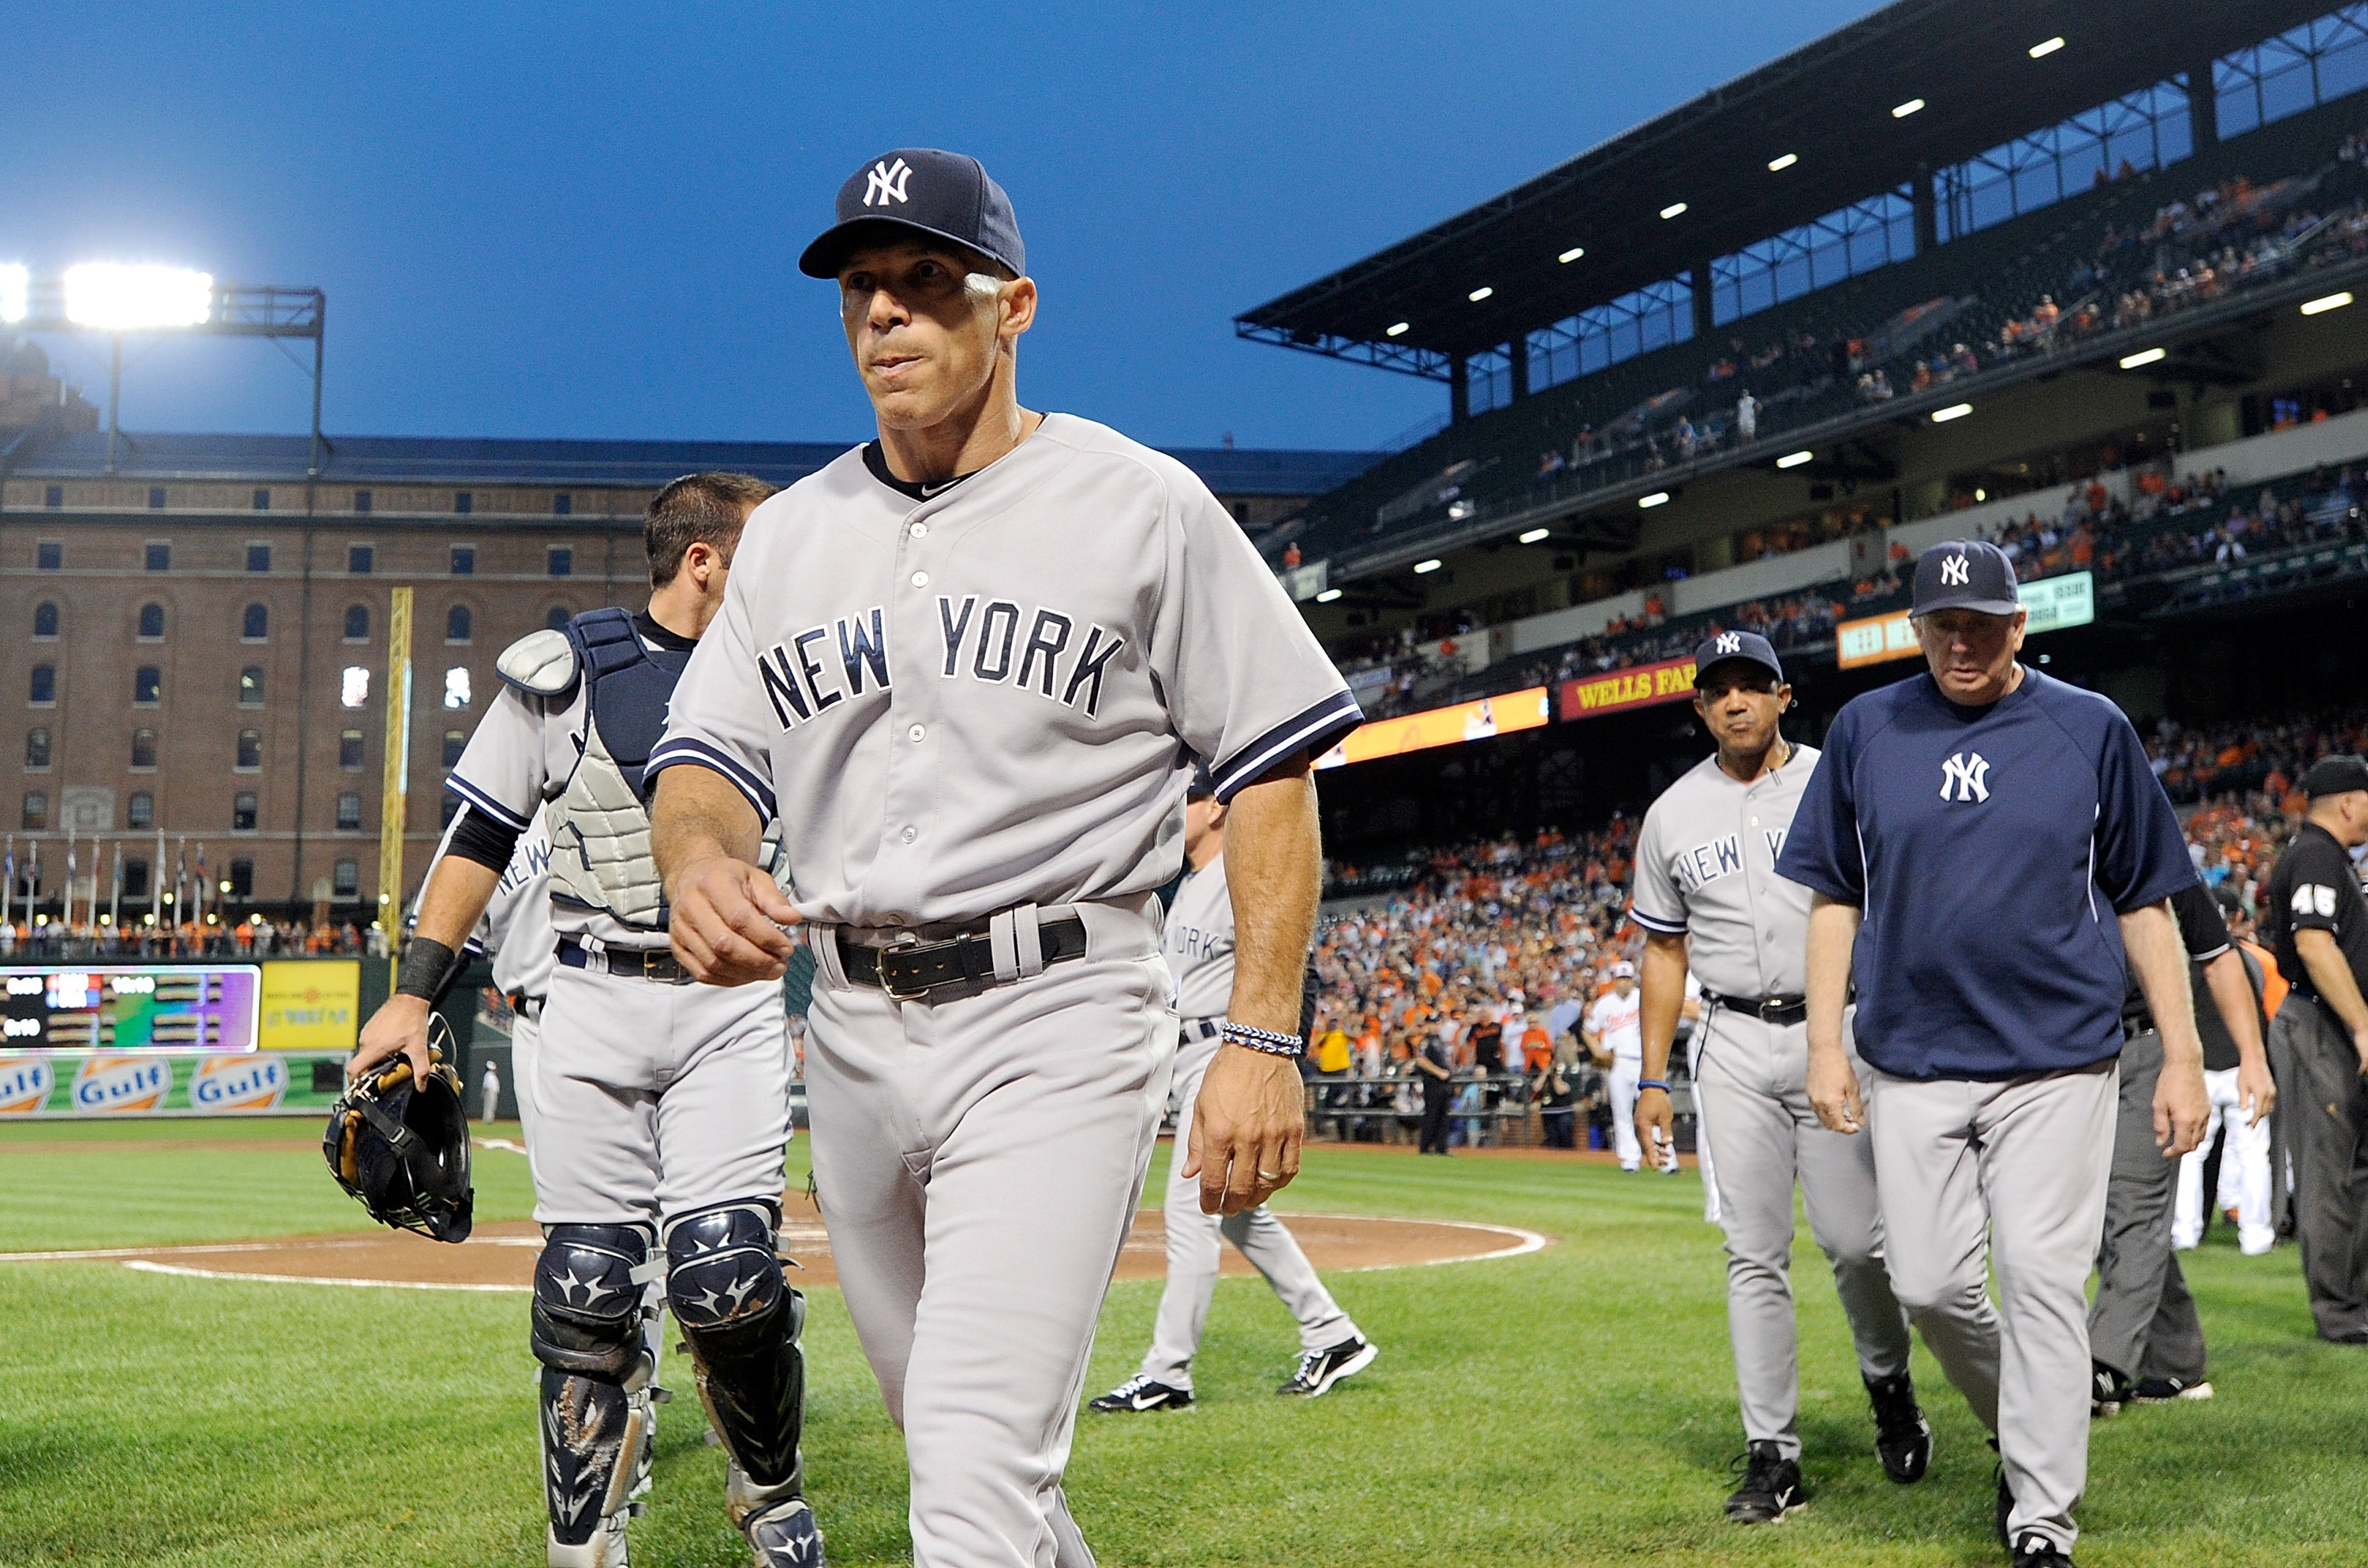 Keeping the Yankees in contention into mid-September enhanced Joe Girardi's managerial reputation.